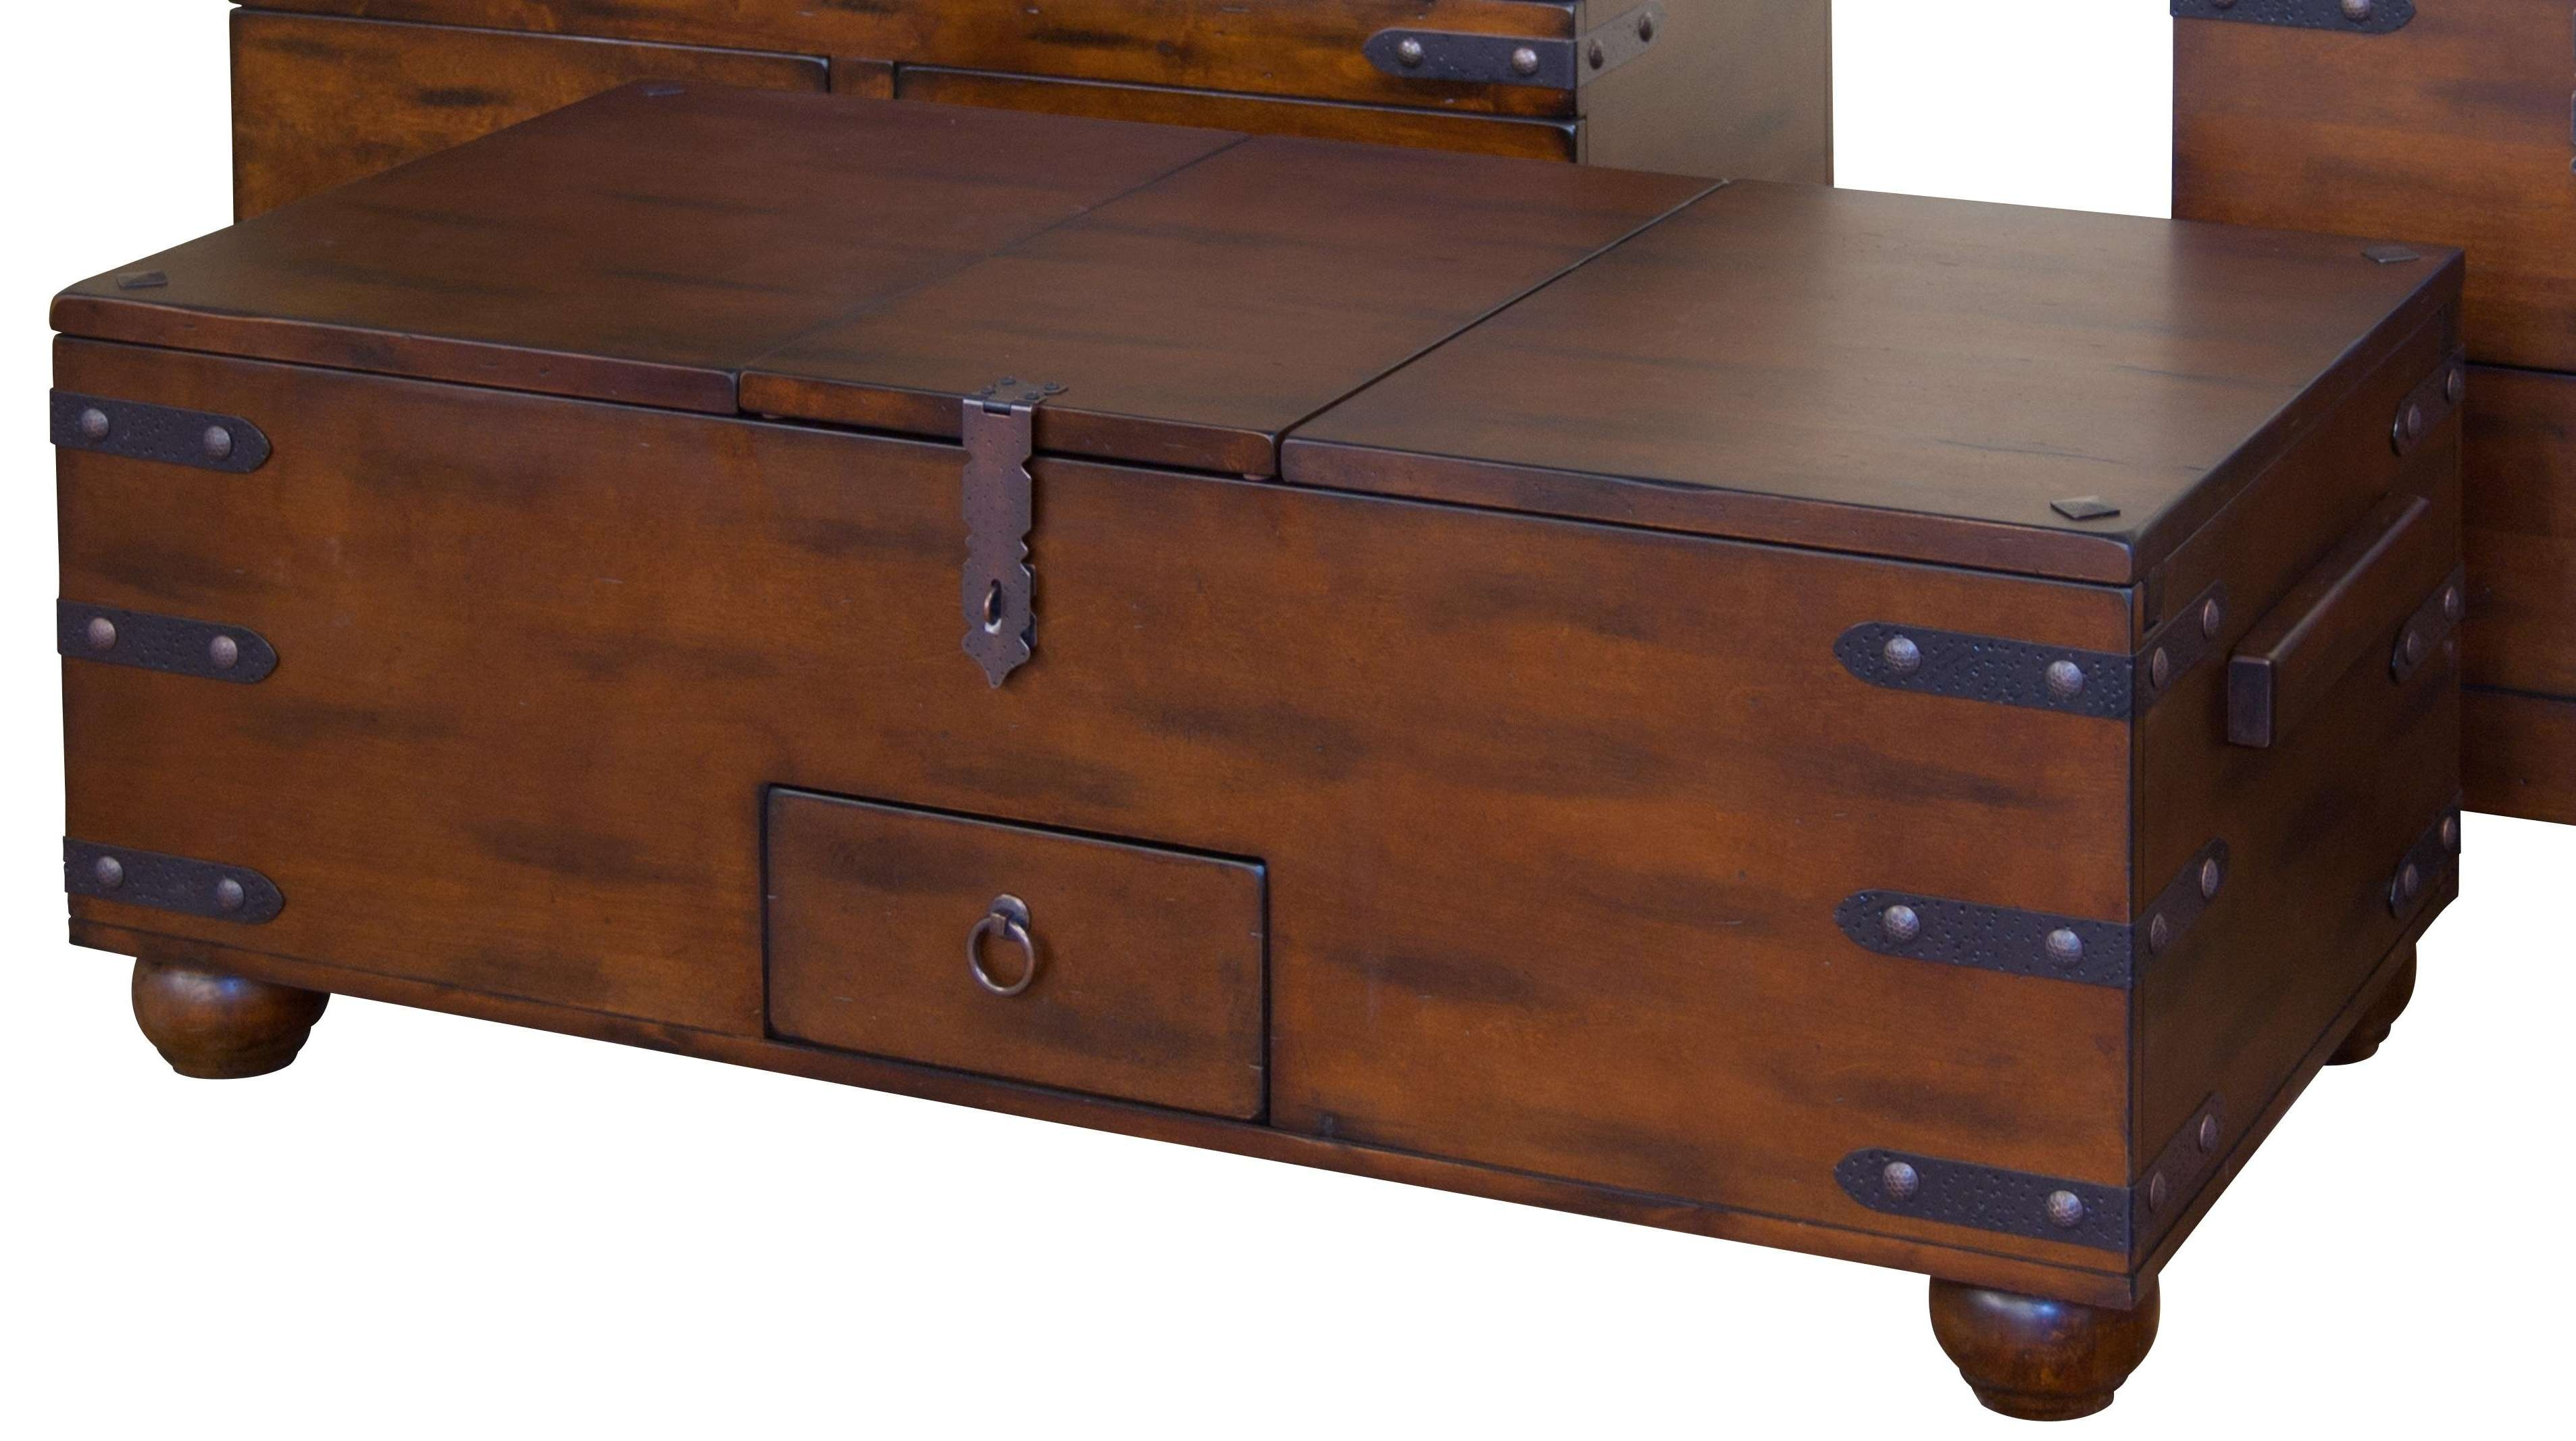 Coffee Table : Wonderful Leather Trunk Coffee Table Square Trunk Within Latest Wooden Trunks Coffee Tables (View 3 of 20)